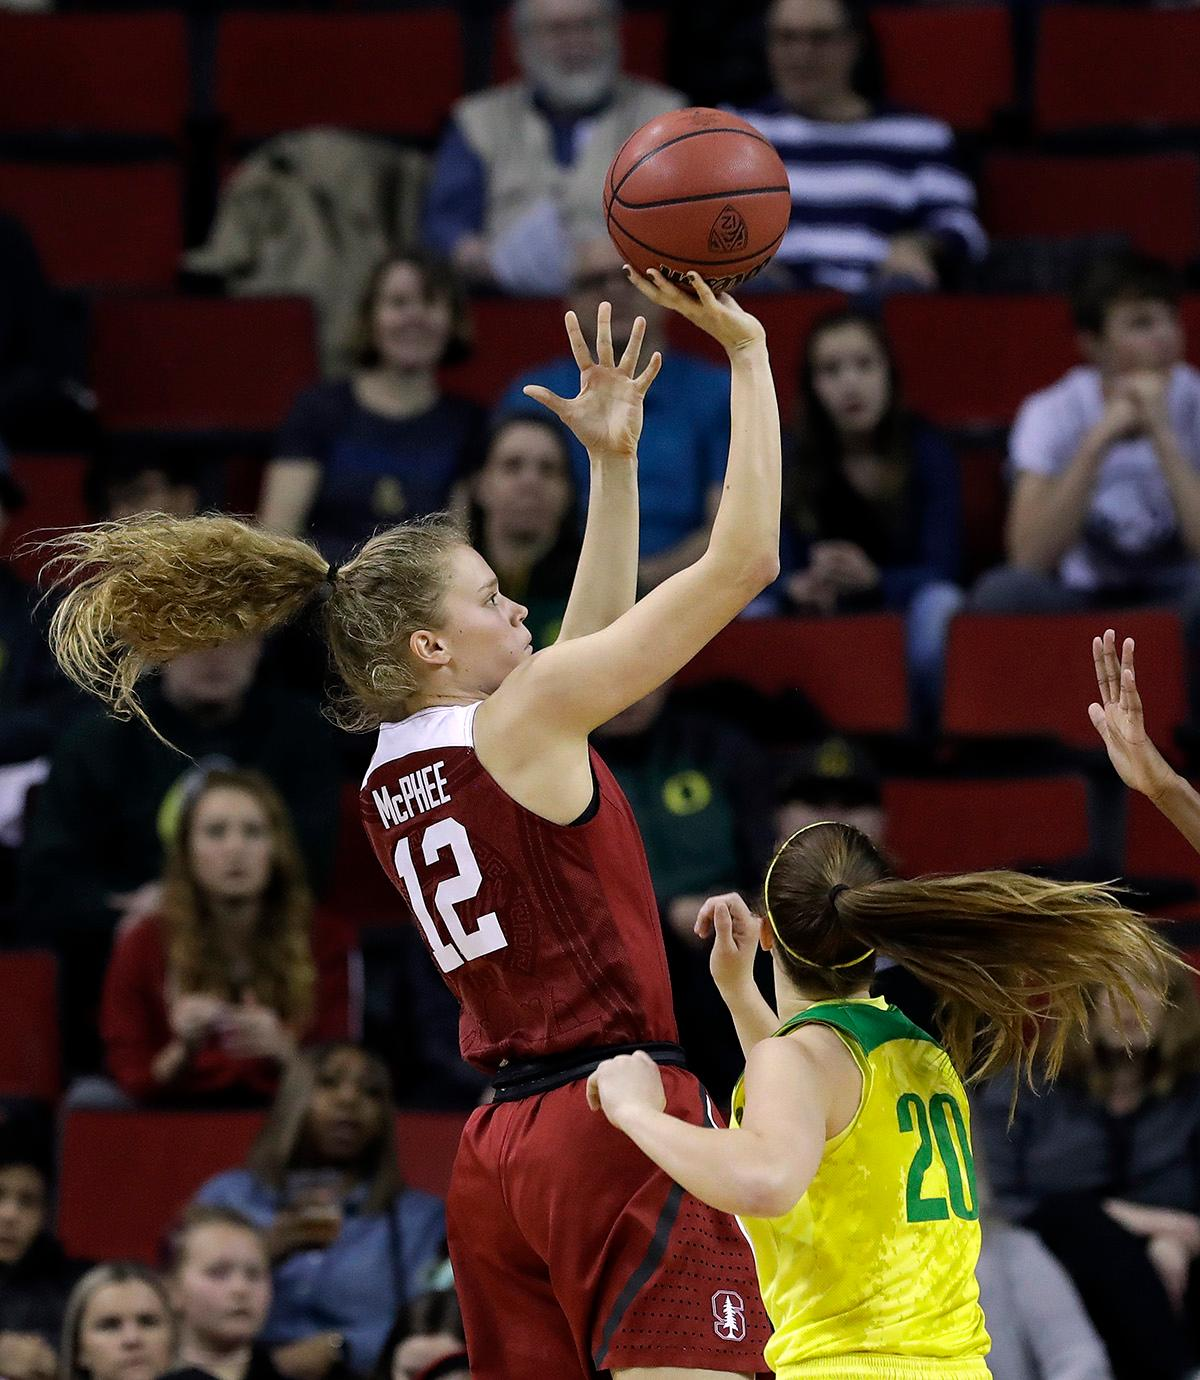 Stanford's Brittany McPhee (12) shoots over Oregon's Sabrina Ionescu during the first half of an NCAA college basketball game in the finals of the Pac-12 Conference women's tournament, Sunday, March 4, 2018, in Seattle. (AP Photo/Elaine Thompson)